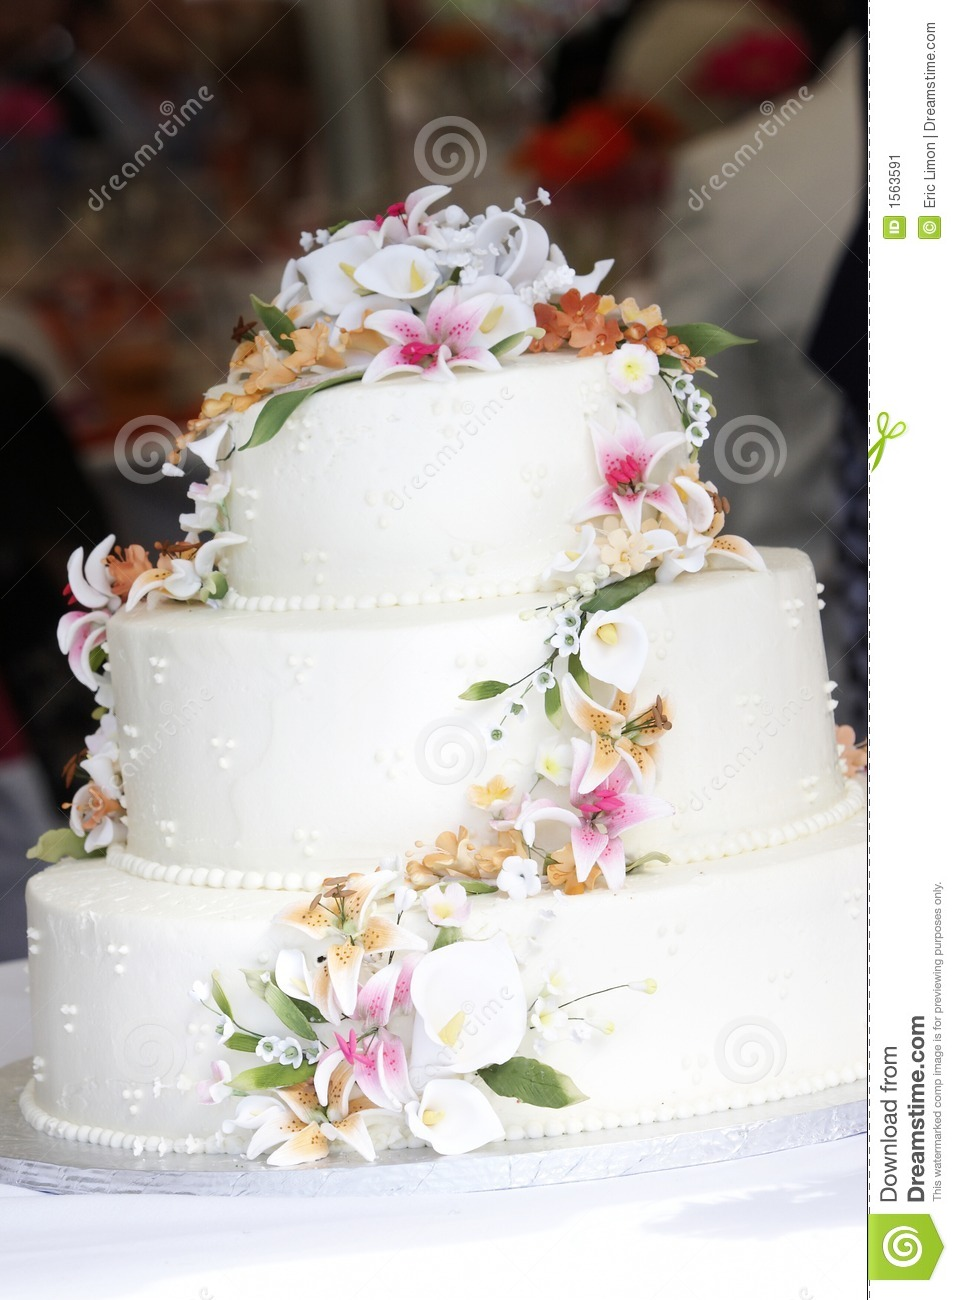 edible sugar flowers for wedding cakes wedding cake with sugar flowers stock image image 3829